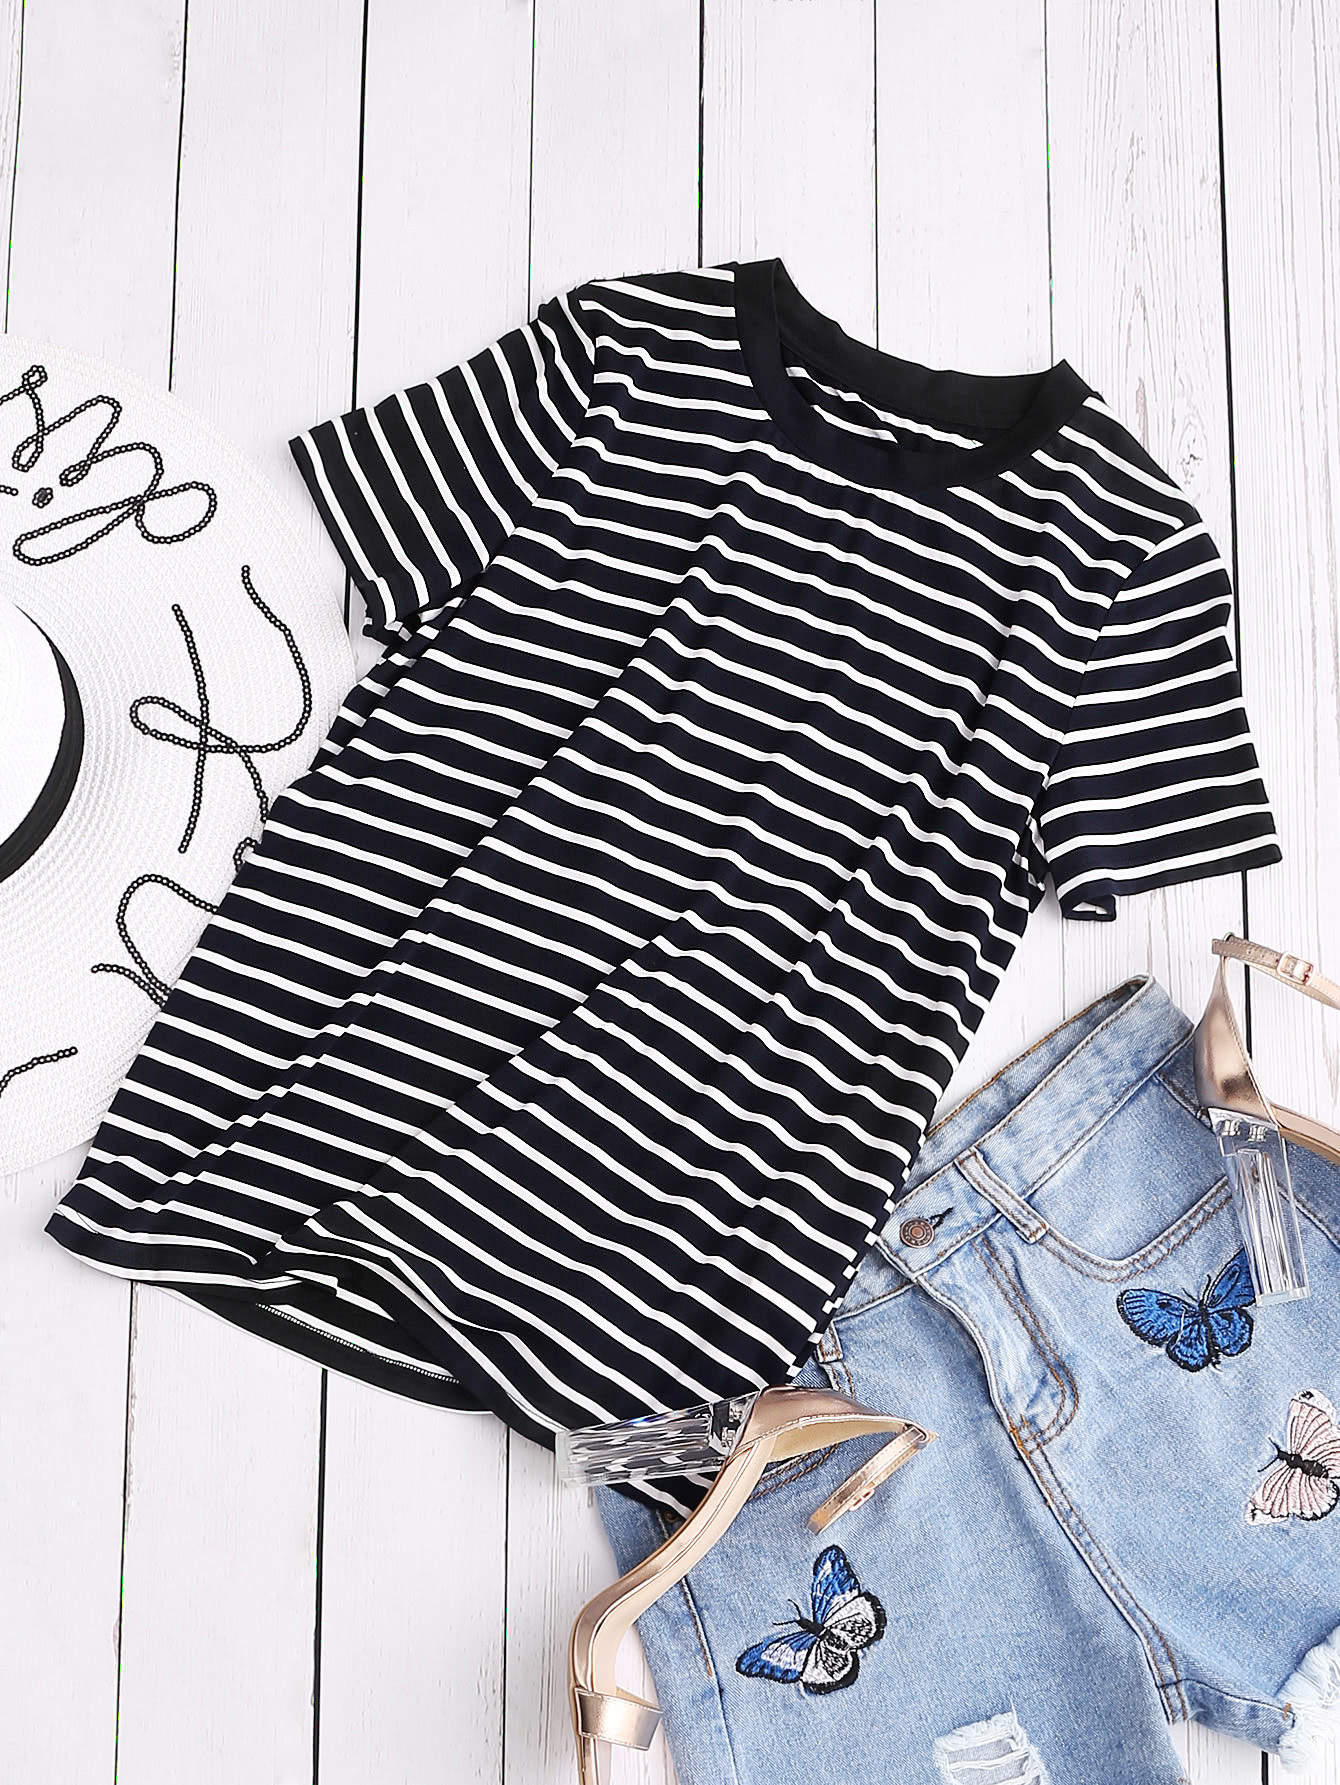 Ribbed Neck Striped Tee tee170413701